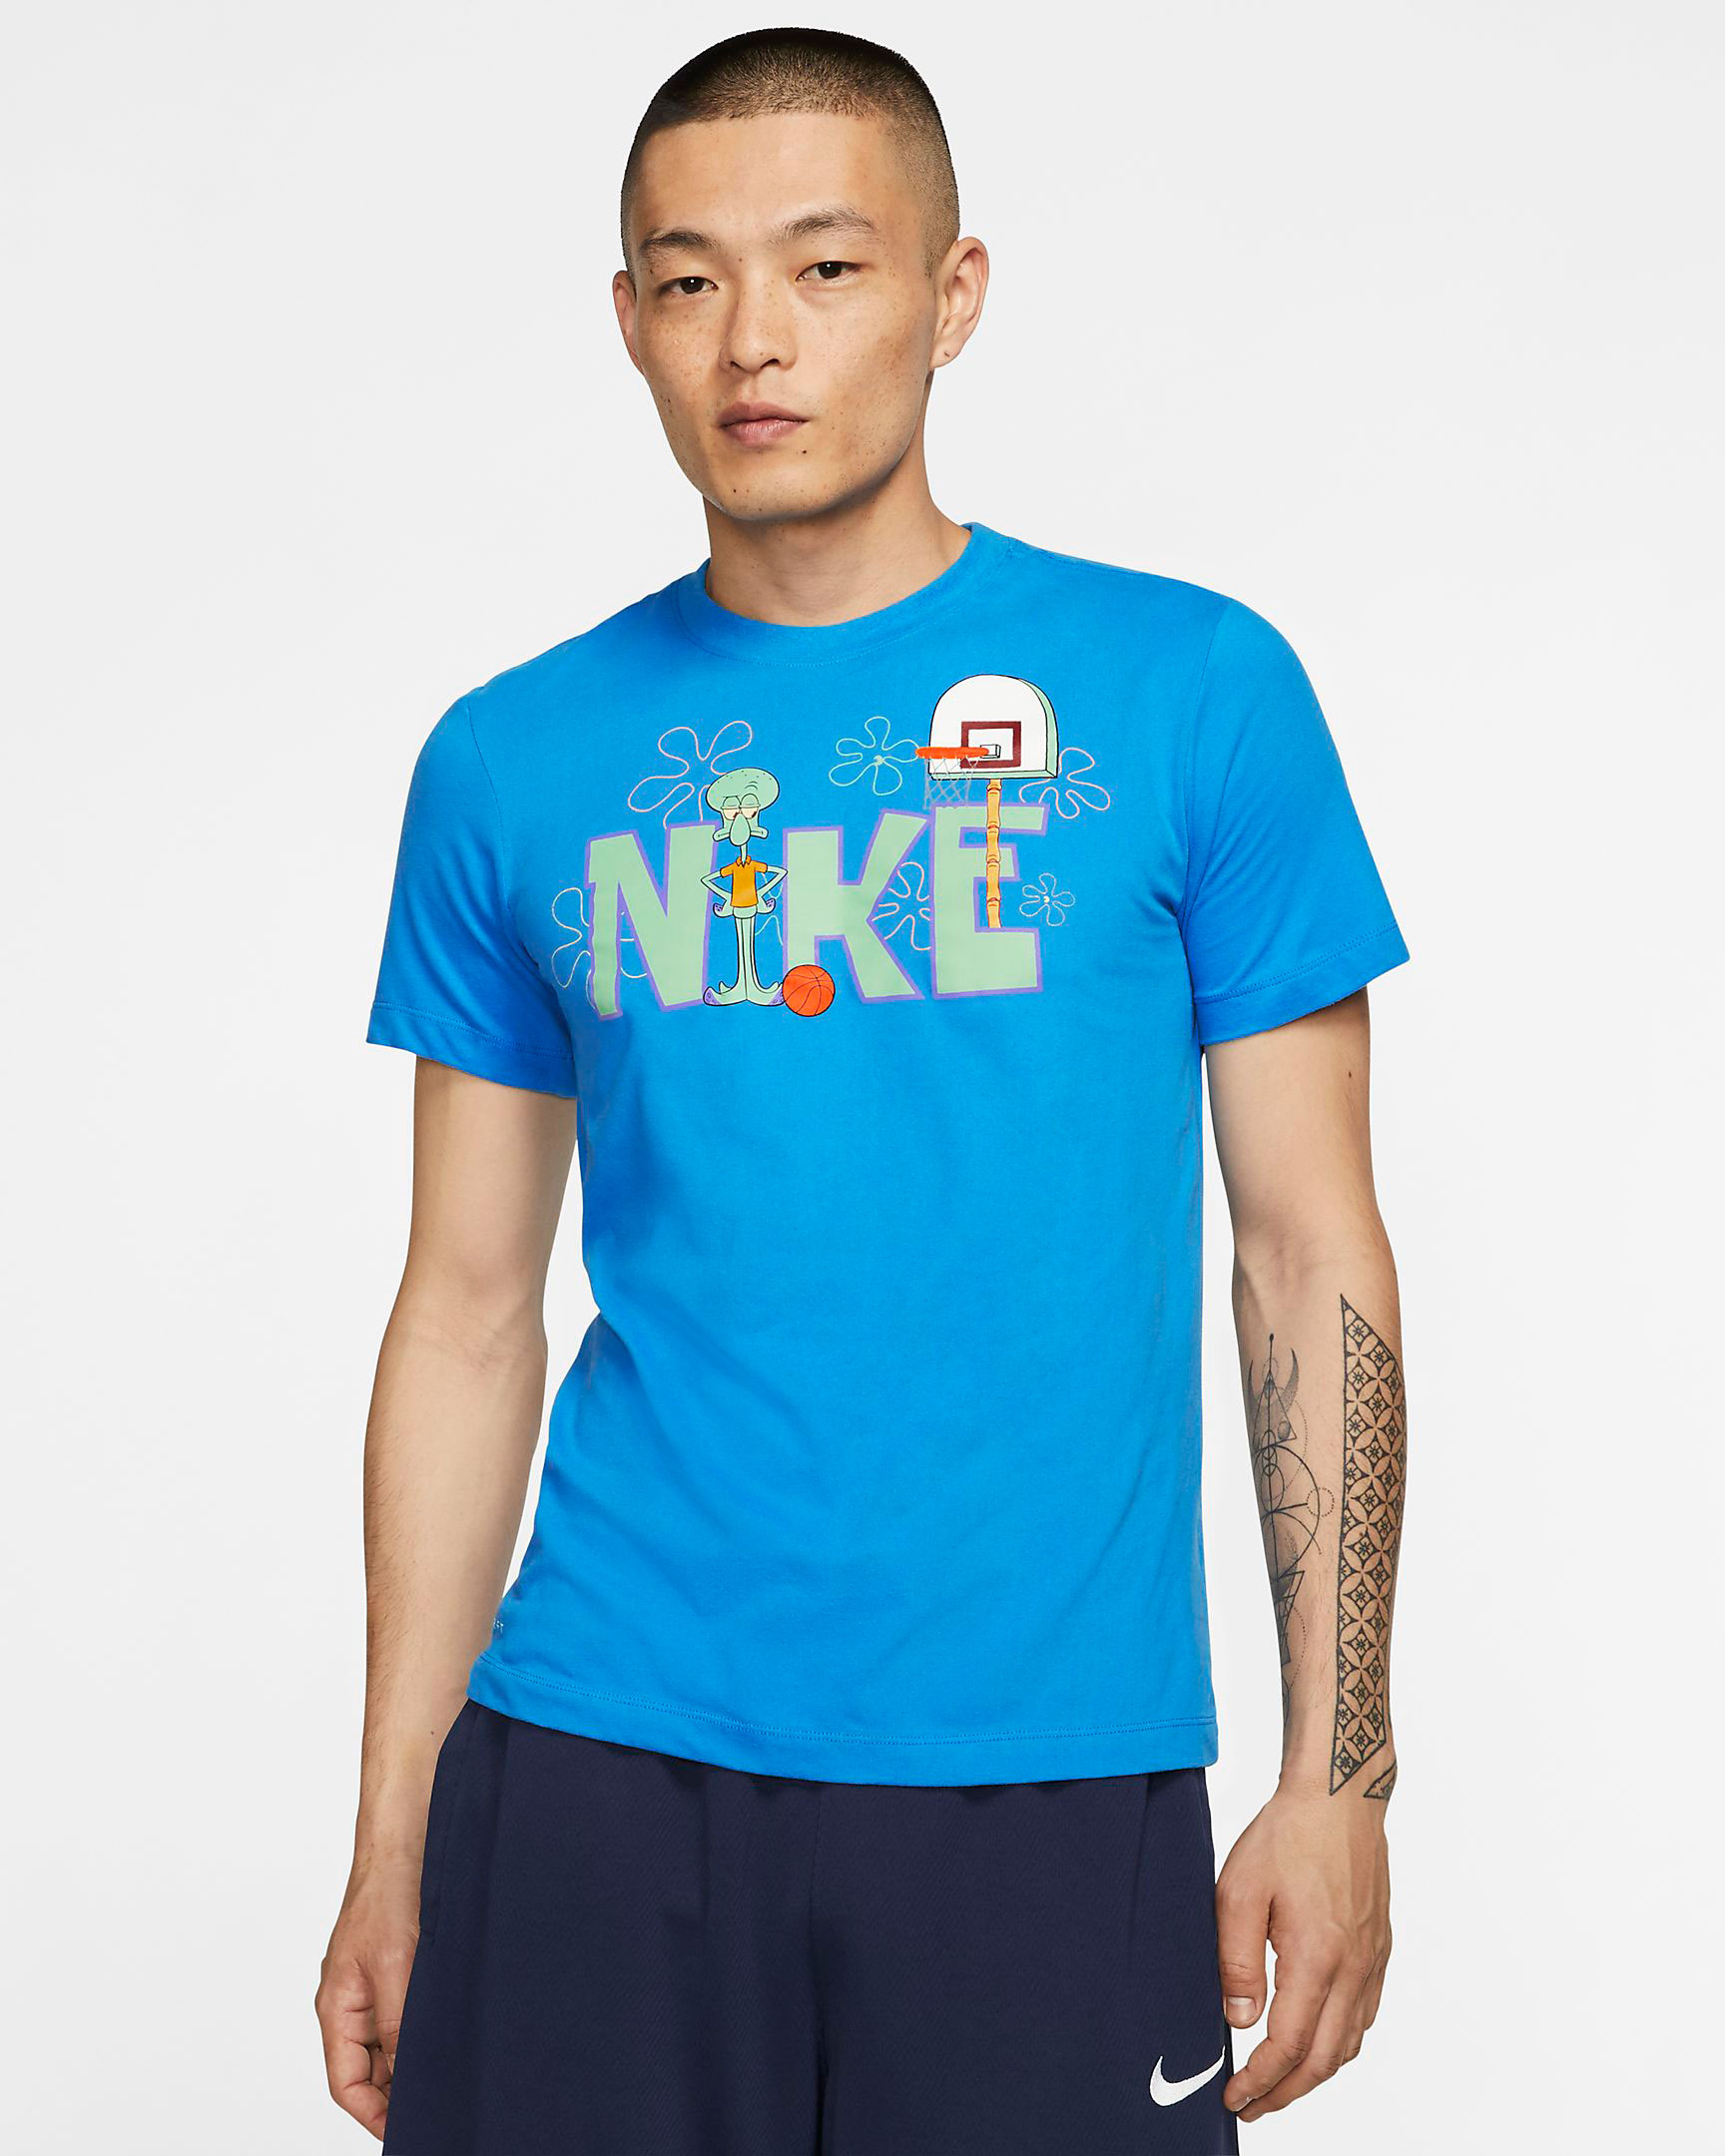 nike-kyrie-spongebob-squidward-tentacles-shirt-1